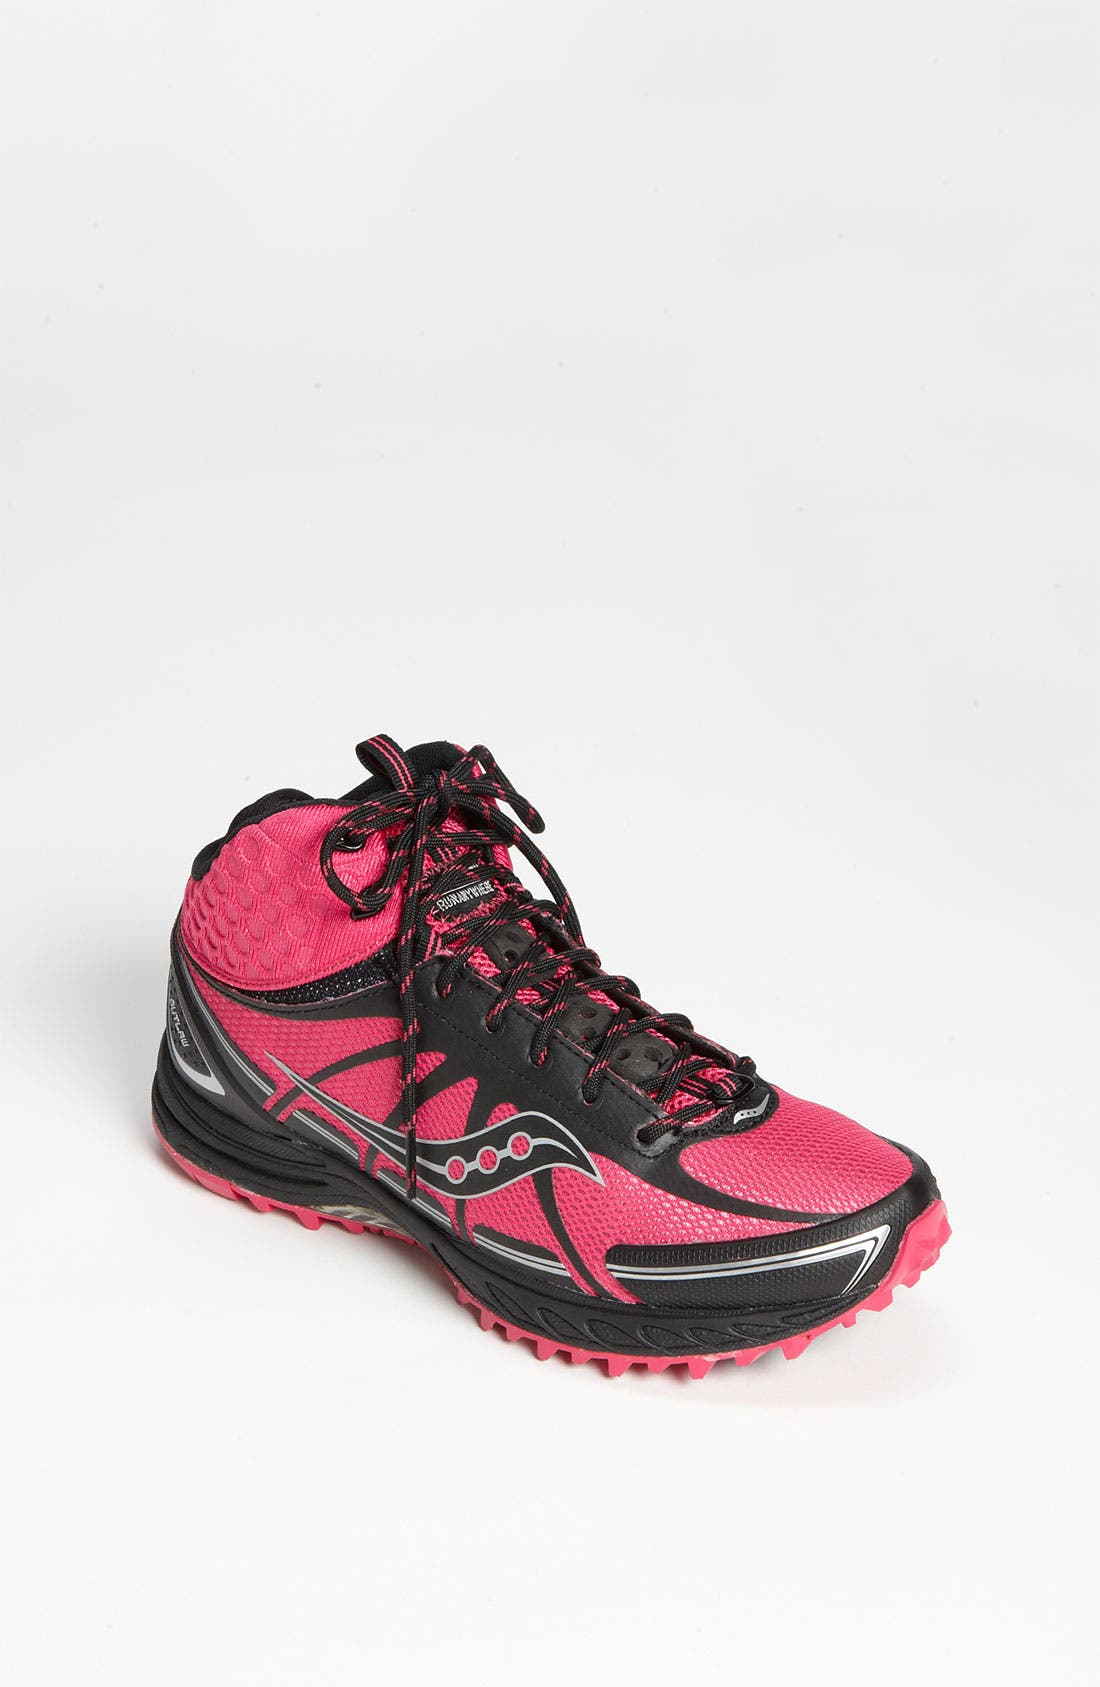 Main Image - Saucony 'ProGrid Outlaw' Running Shoe (Women)